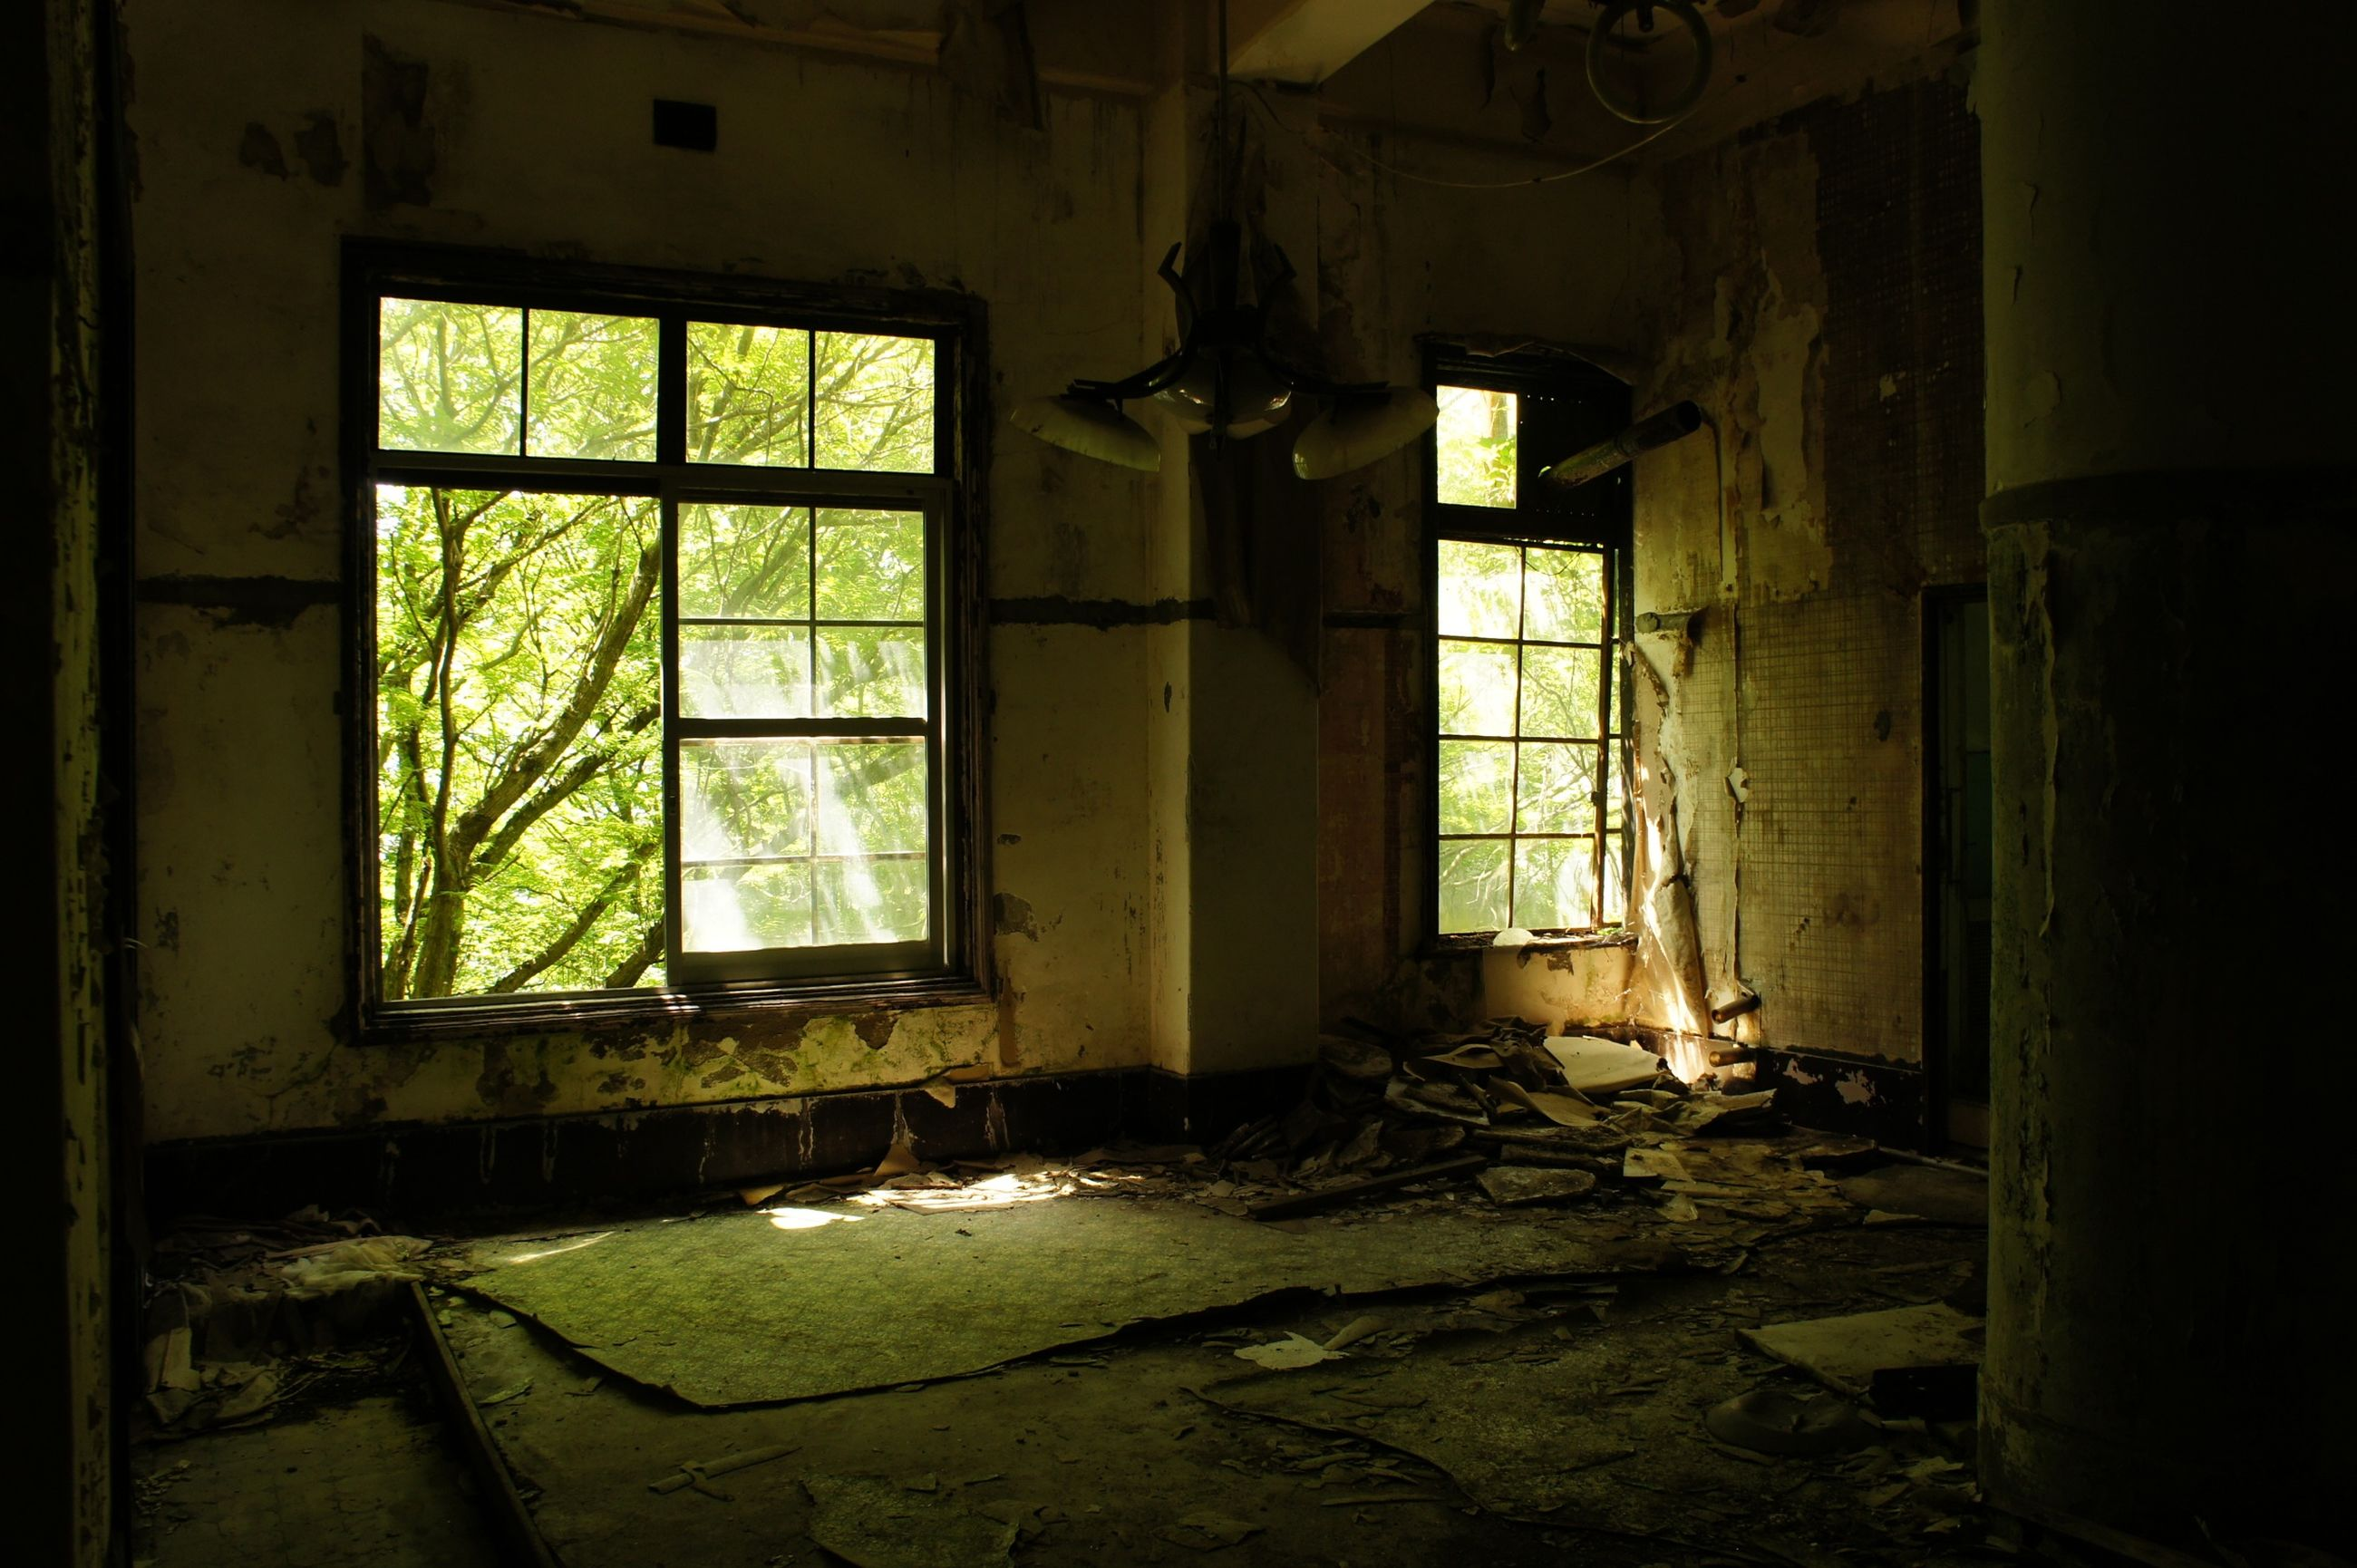 indoors, abandoned, obsolete, damaged, window, deterioration, run-down, old, interior, architecture, house, built structure, bad condition, messy, home interior, broken, weathered, room, absence, ruined